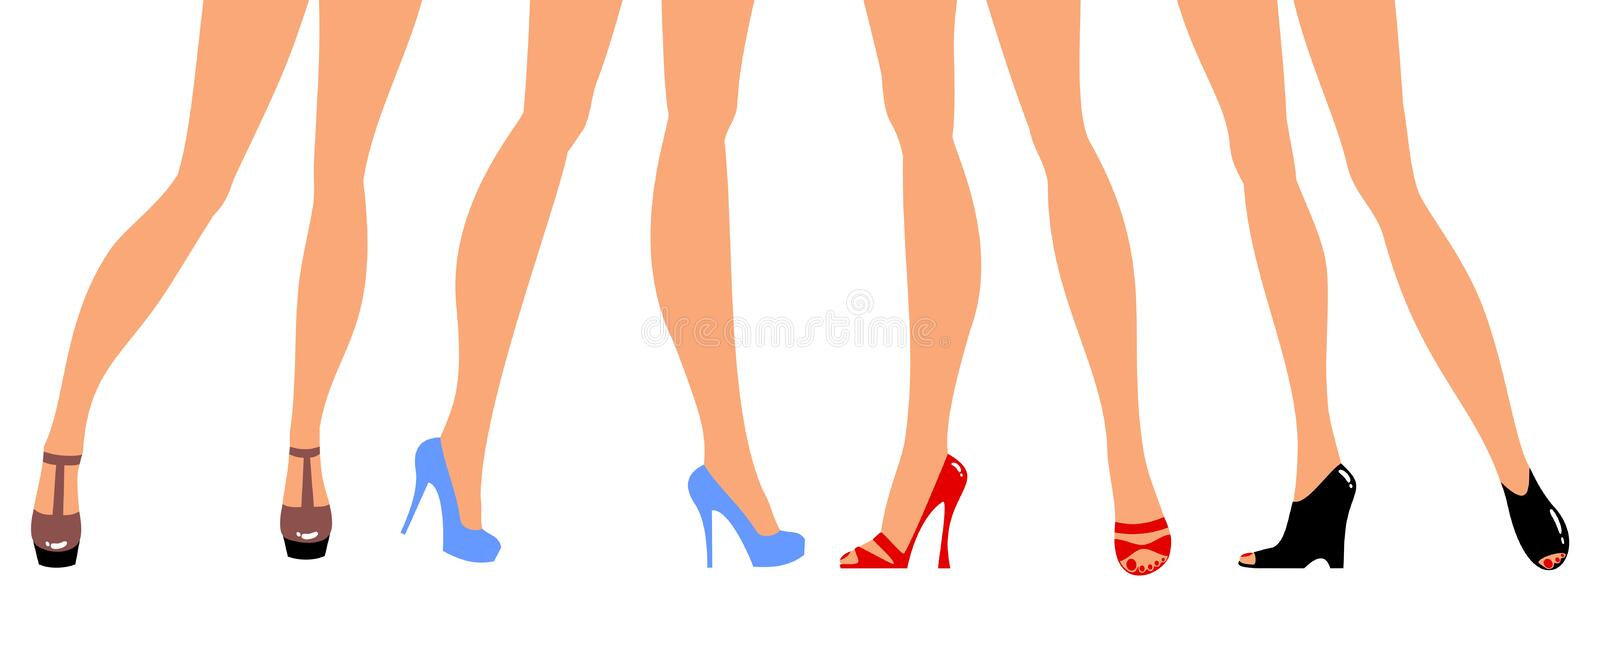 Download Different shoes. stock vector. Image of fashionable, retro - 18999684